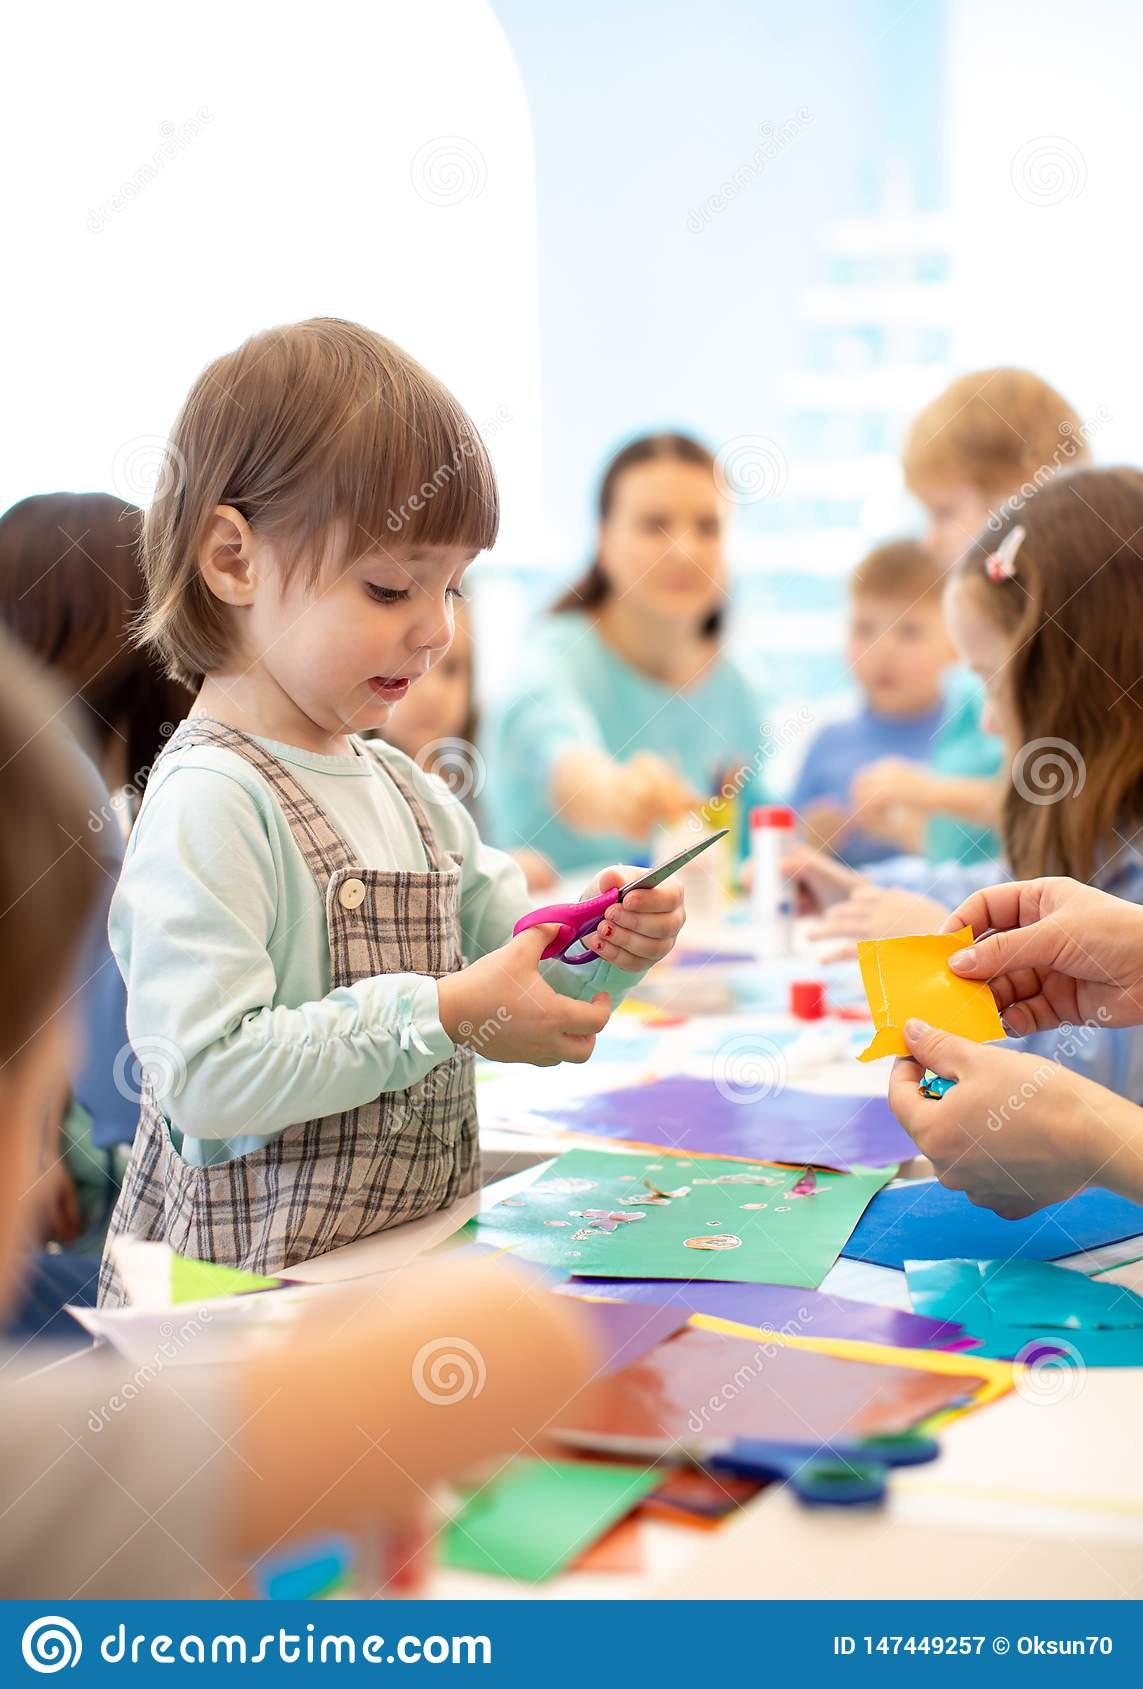 Child with scissors in hands cutting paper with teacher in class room. Group of children doing project in kindergarten